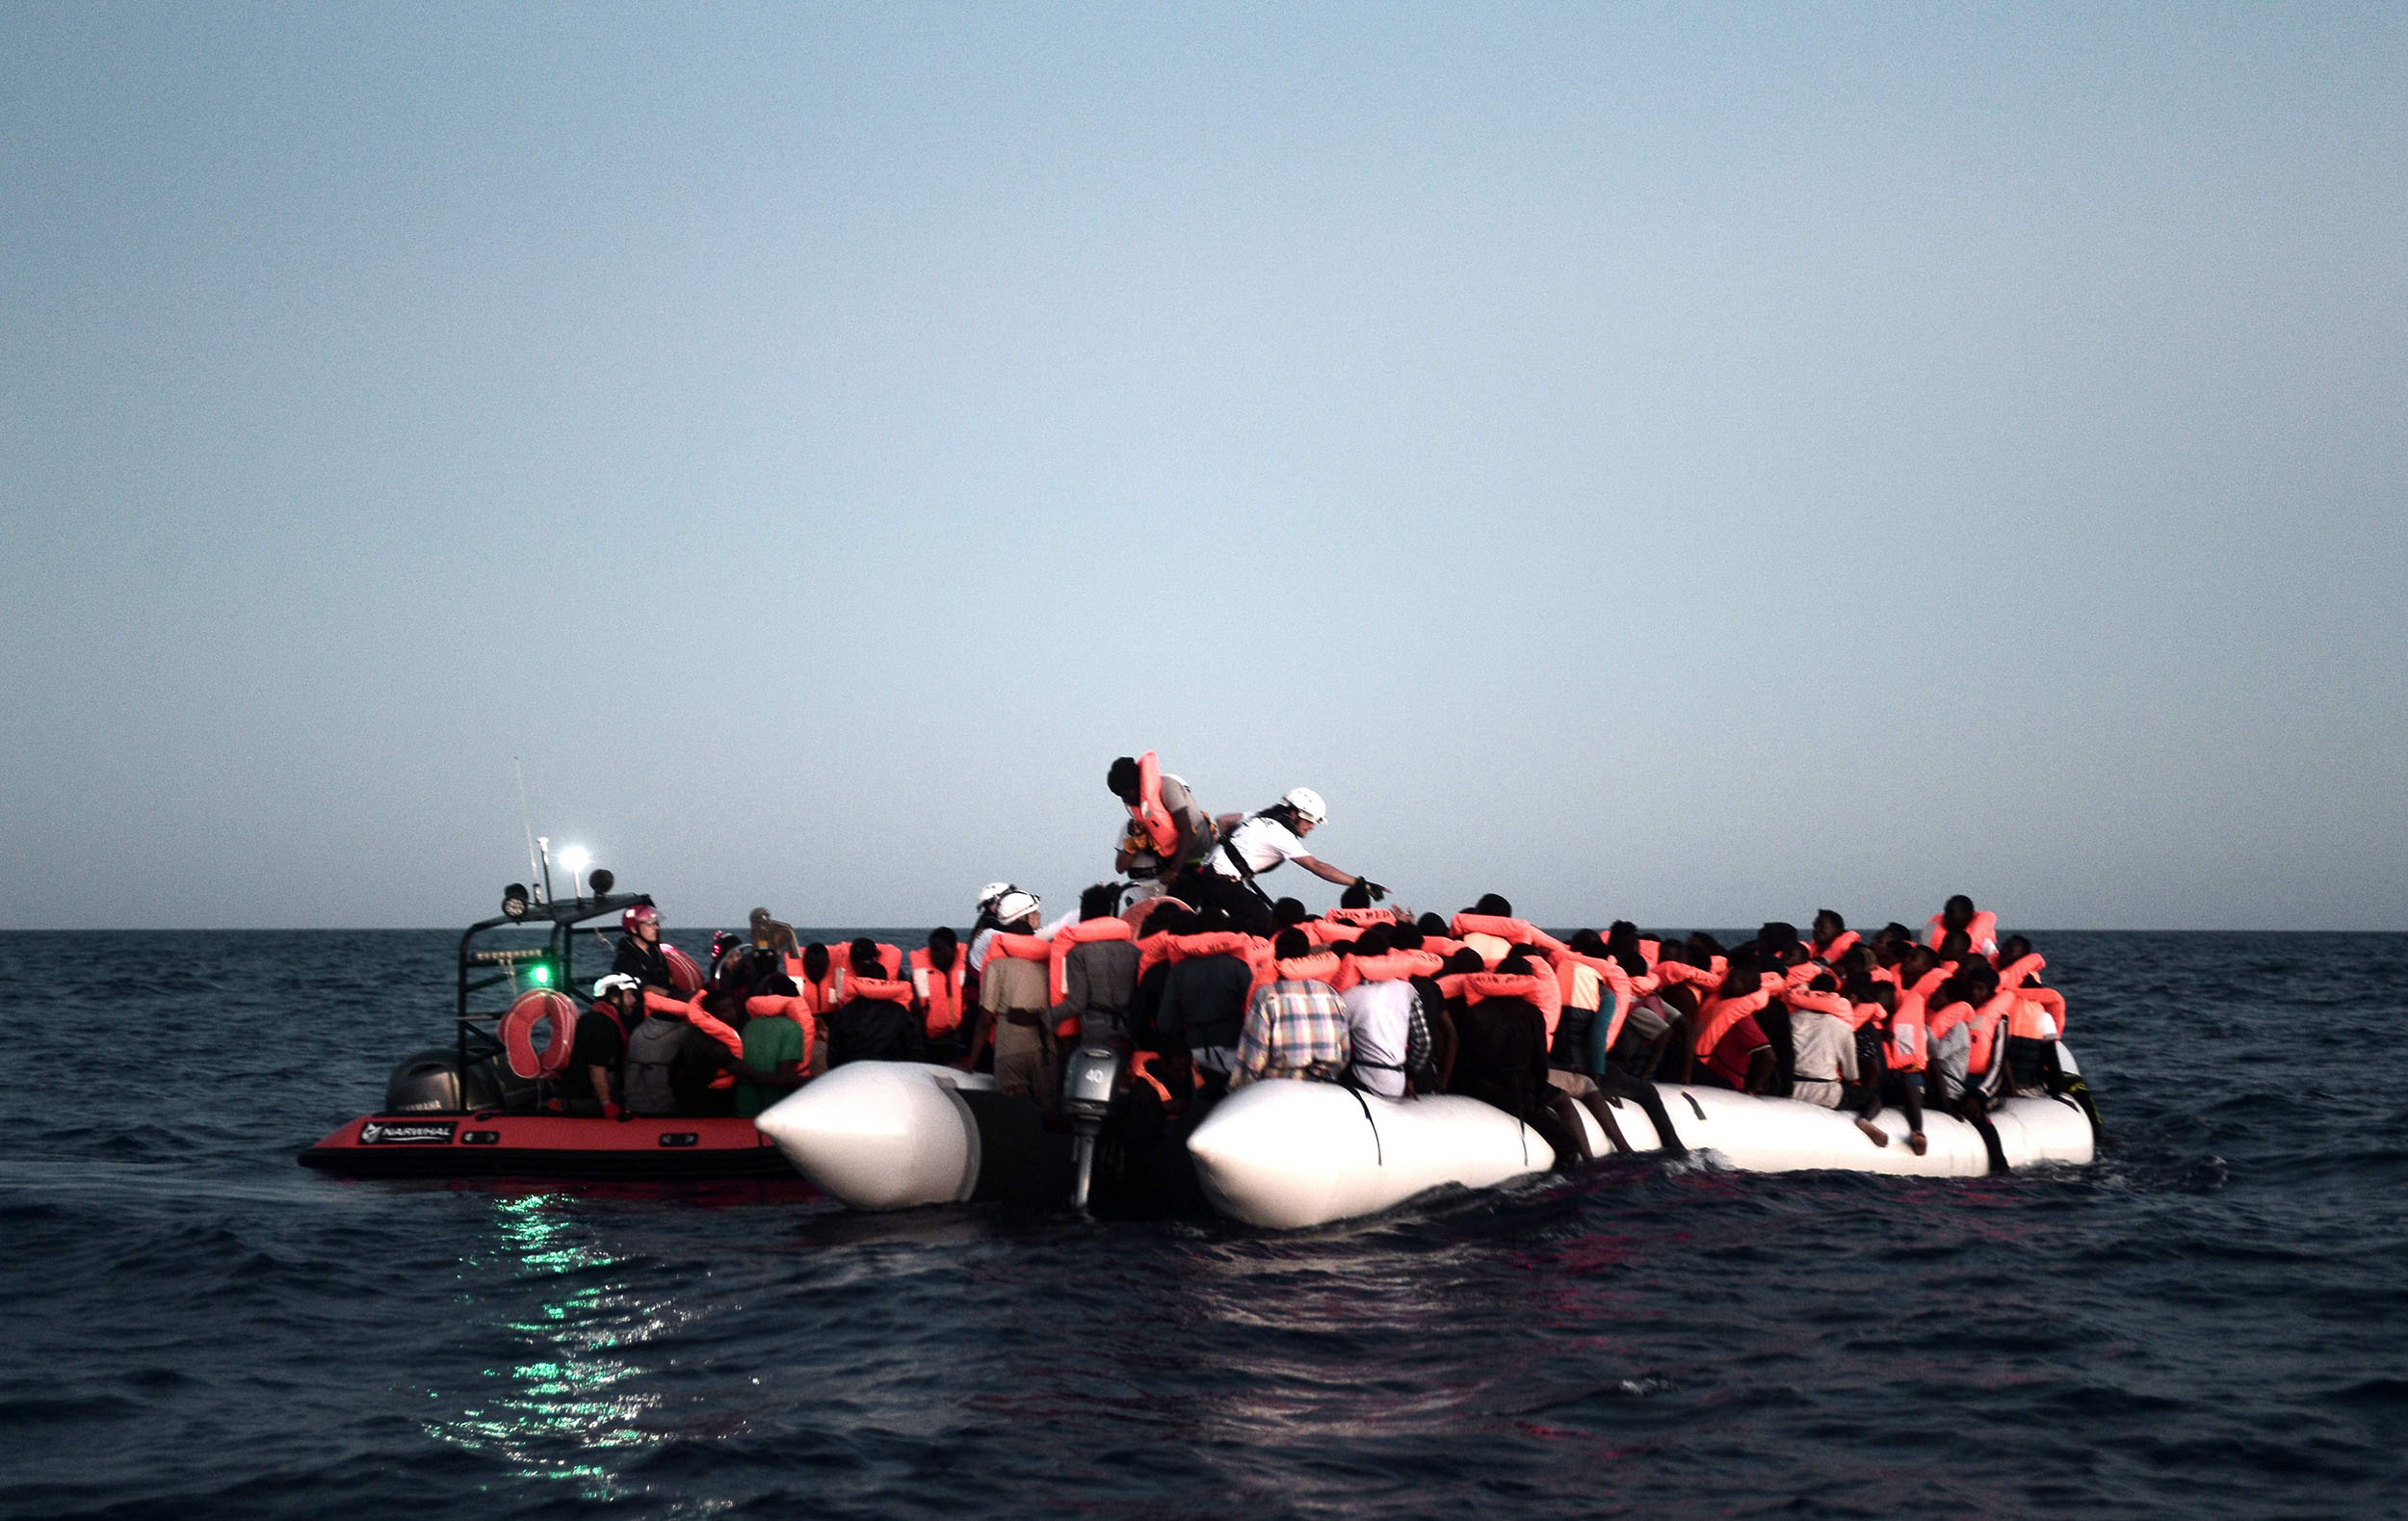 Ship-carrying-hundreds-of-rescued-migrants-barred-entry-by-Italy,-Malta